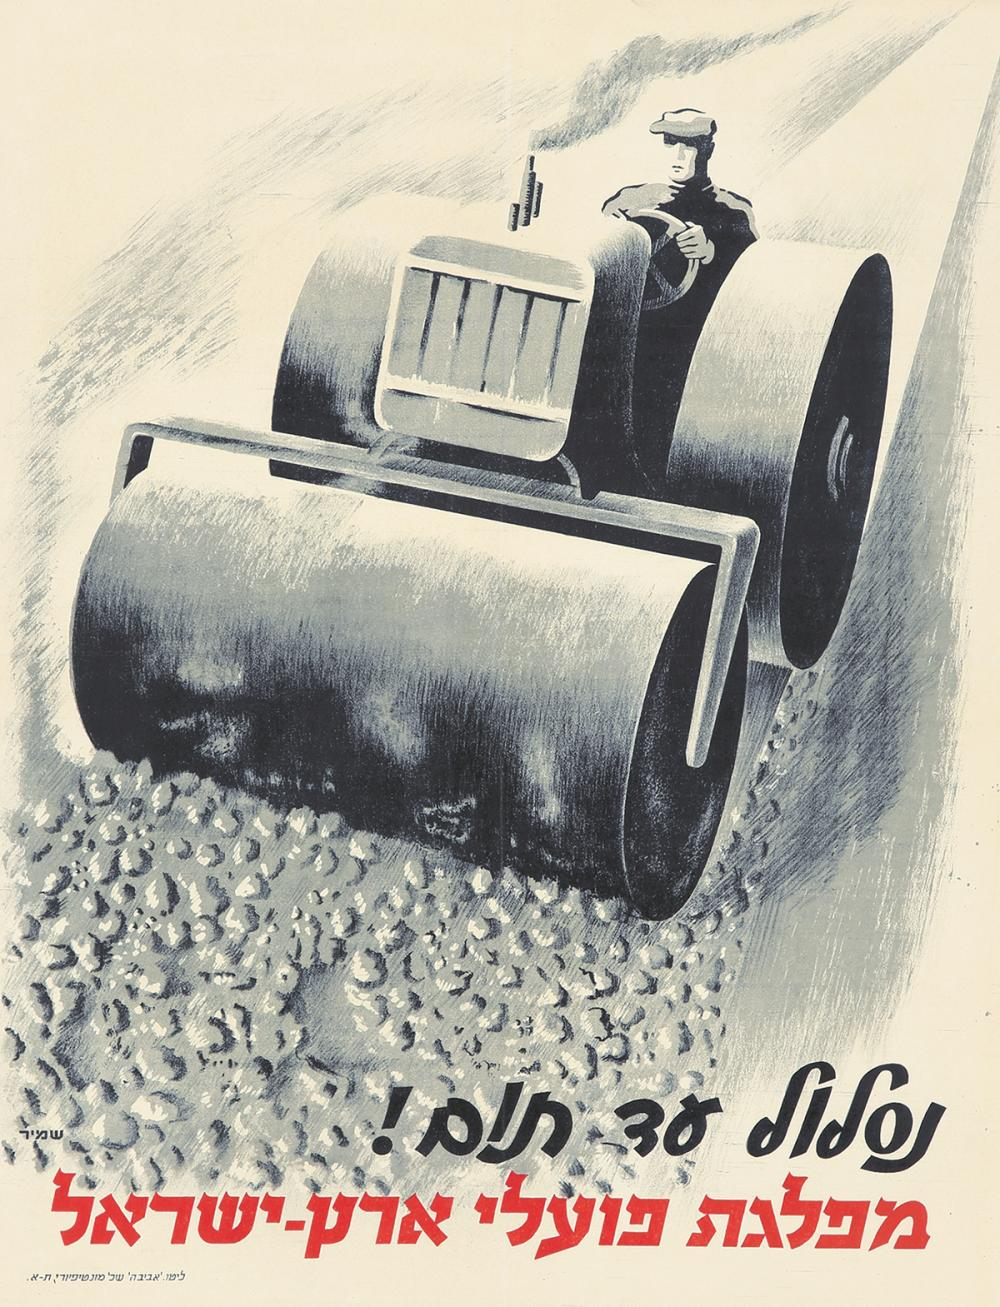 We Shall Pave Until the End. 1946.